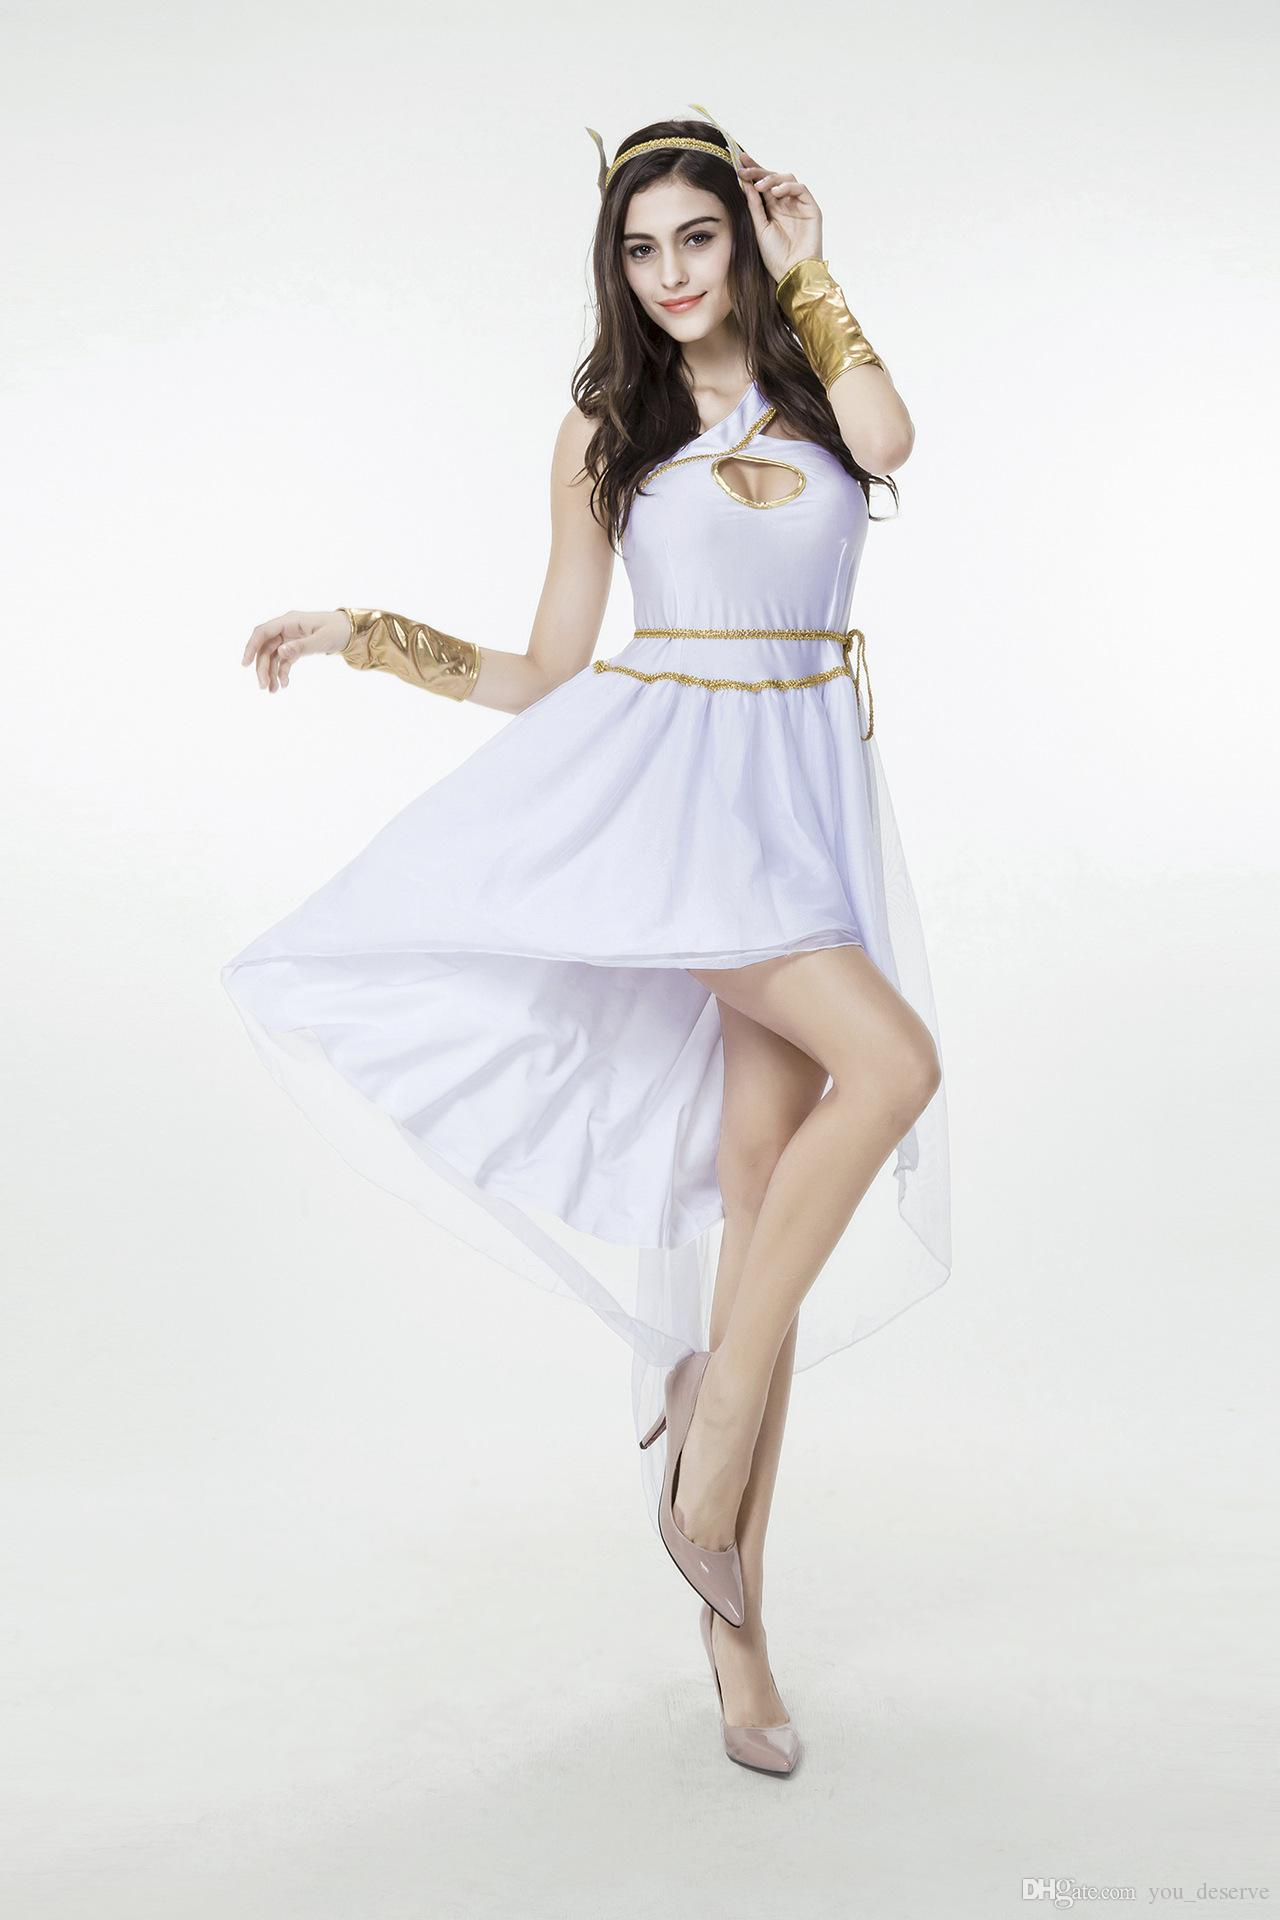 2020 New Arrival Adult Women Greek Goddess Dress White Sexy Cosplay Halloween Costumes Stage Performance Clothing Hot Selling